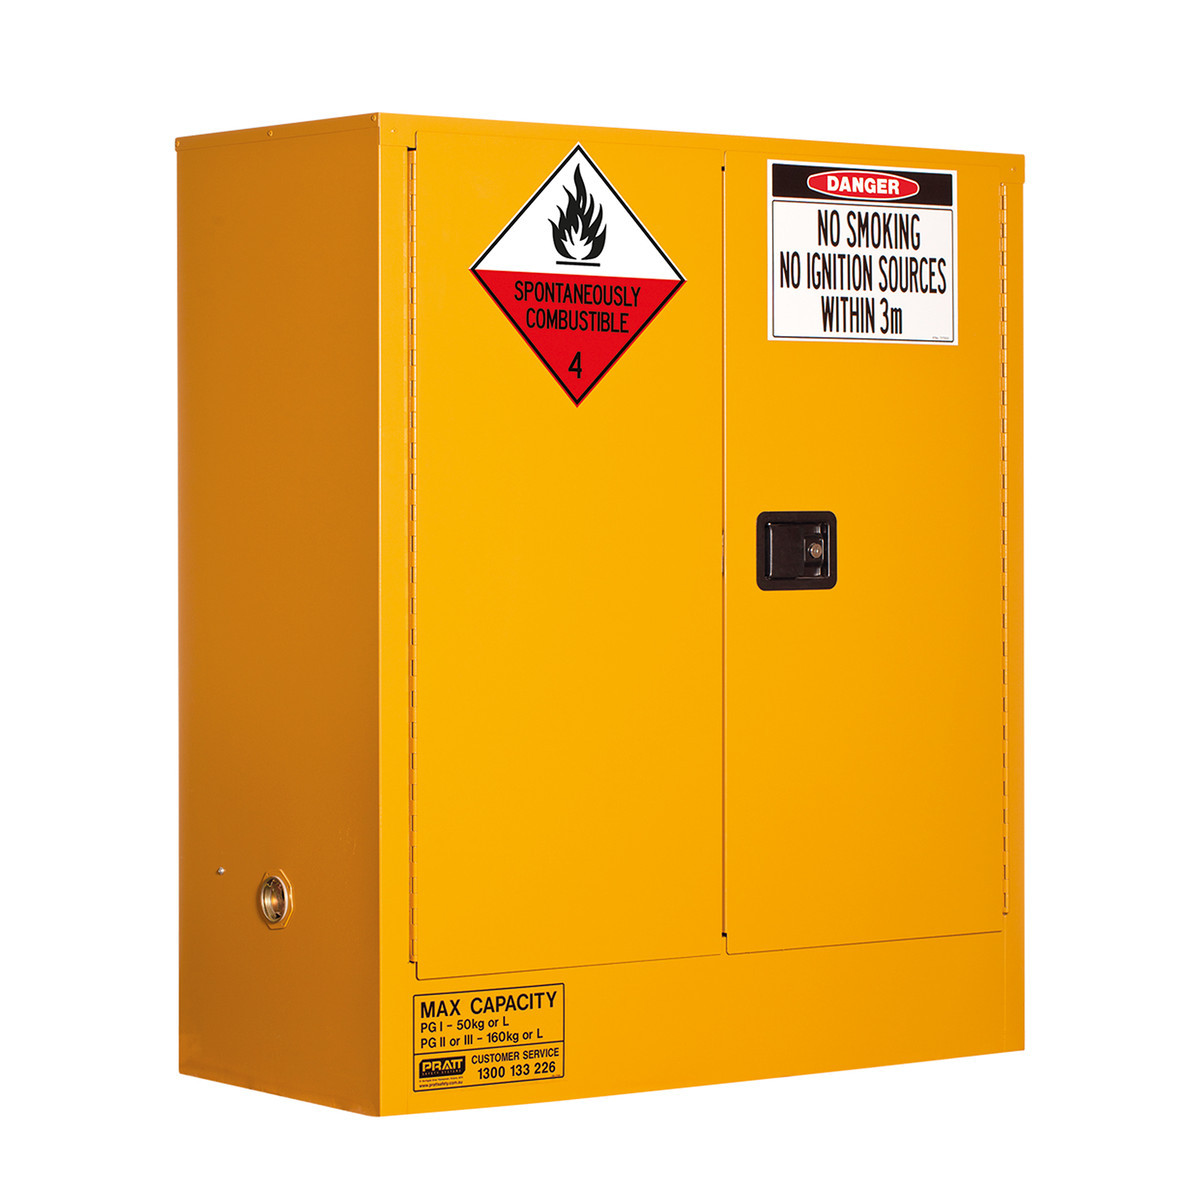 Class 4 Dangerous Goods Storage Cabinet 160 Liters - 2 Door, 2 Shelf